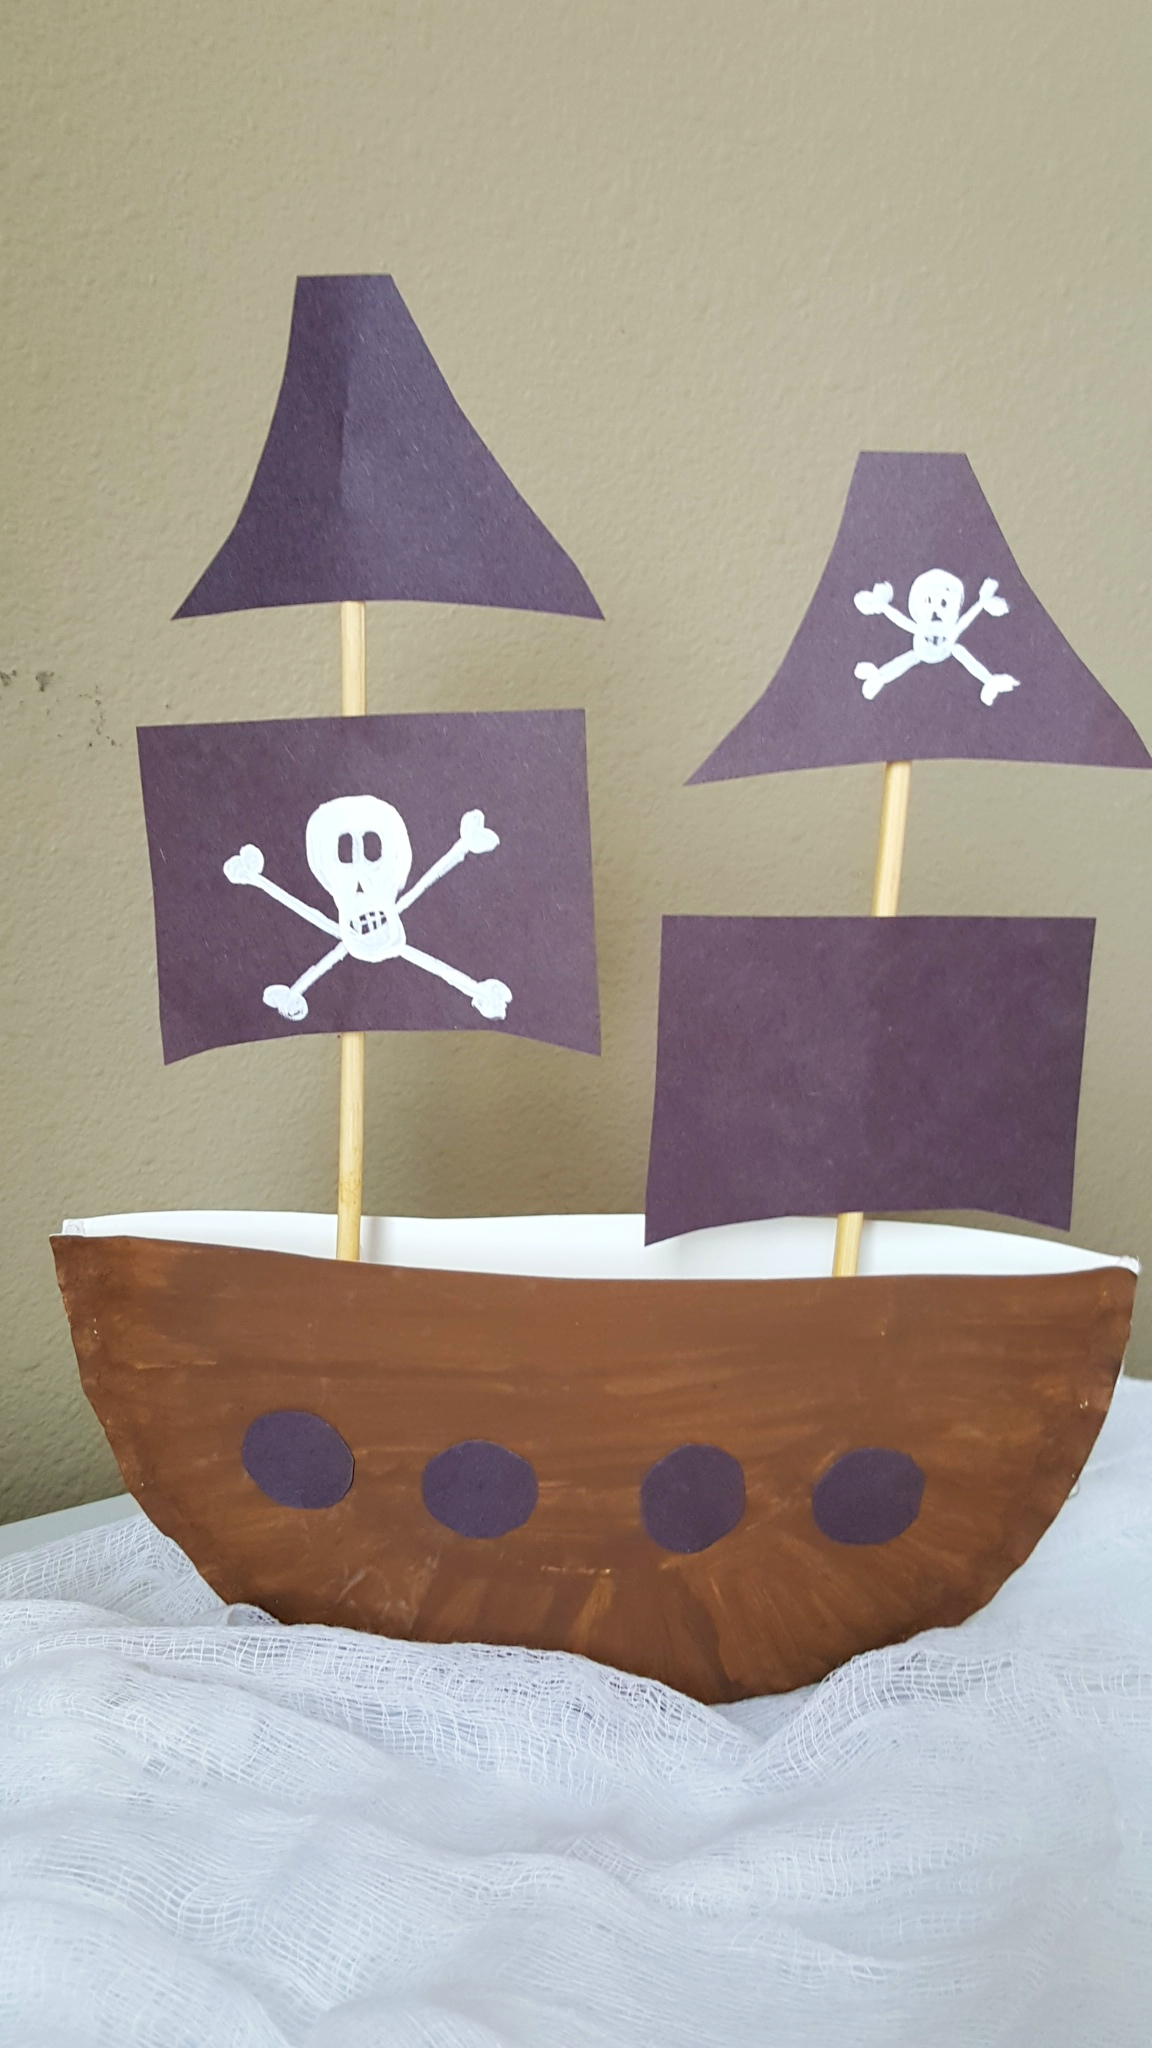 pirate paper Find and save ideas about pirate crafts on pinterest | see more ideas about pirate theme, pirate preschool and preschool pirate theme.